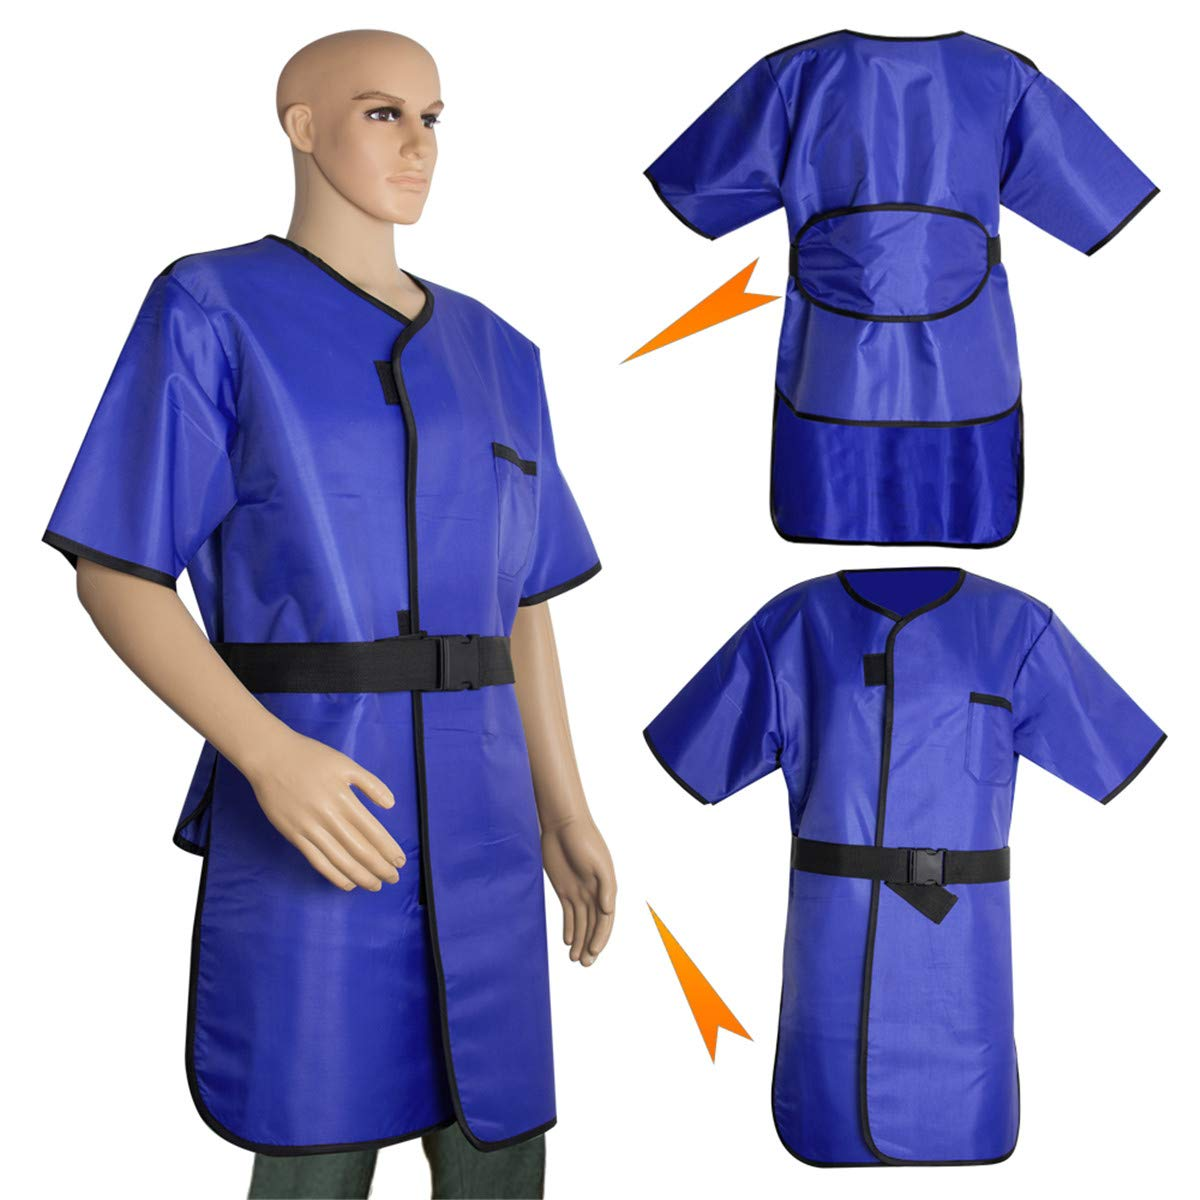 X-Ray Protection Apron,Fencia Flexible X-Ray Protective Cloth Lead Radiation Protection Apron Gel Coat 0.35mmpb Blue by Fencia (Image #3)